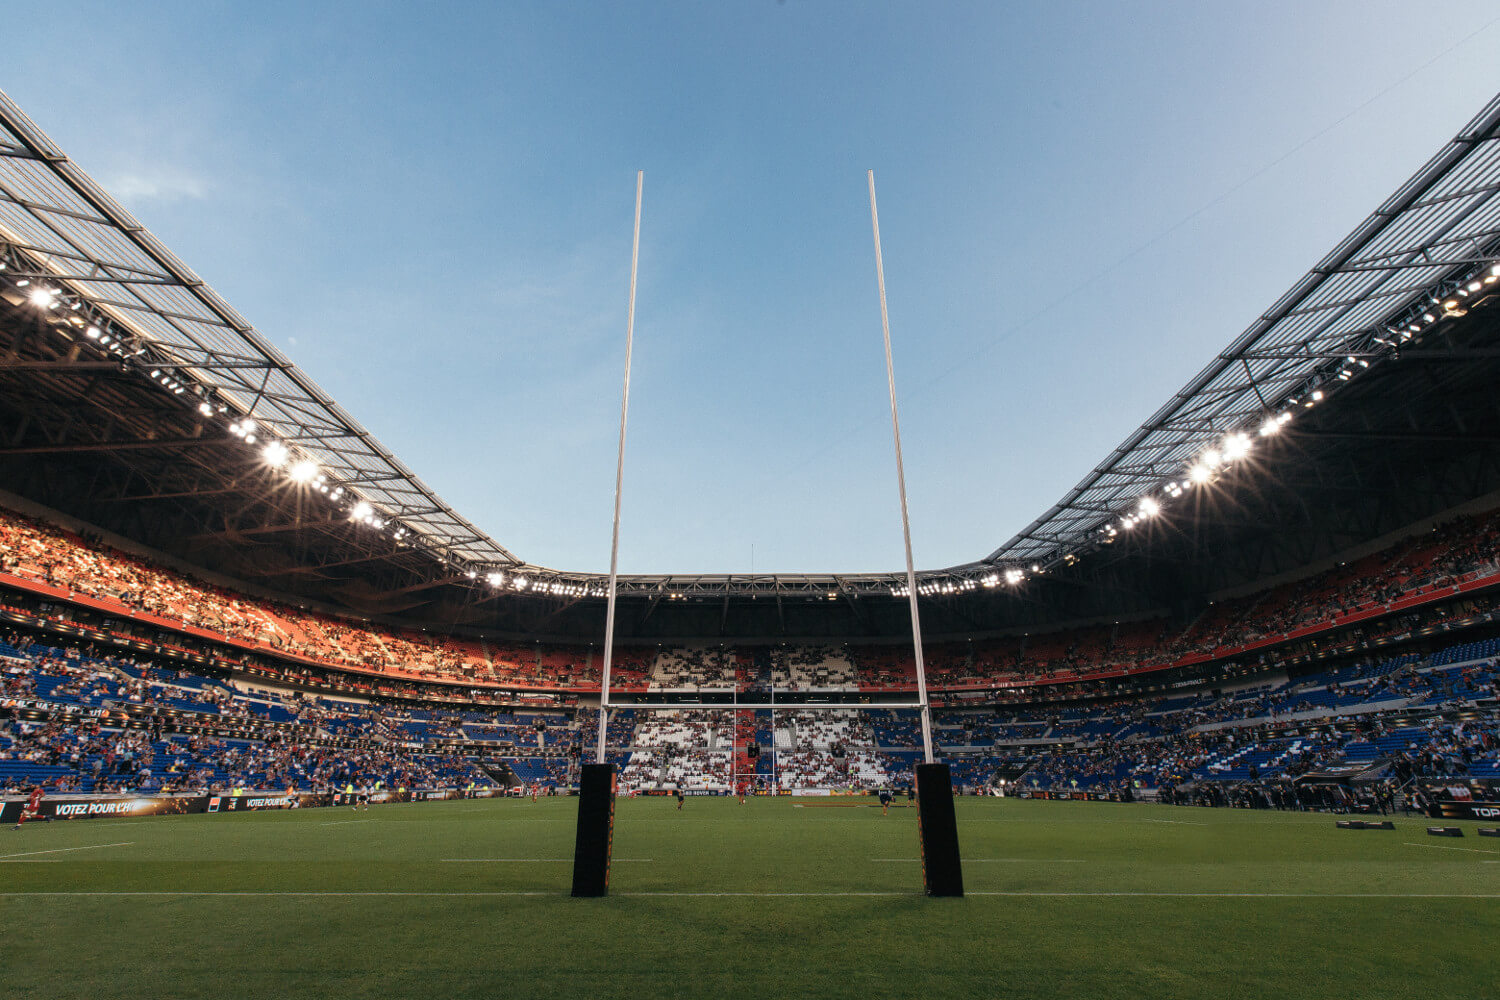 Lyon stadium filling up before a rugby match